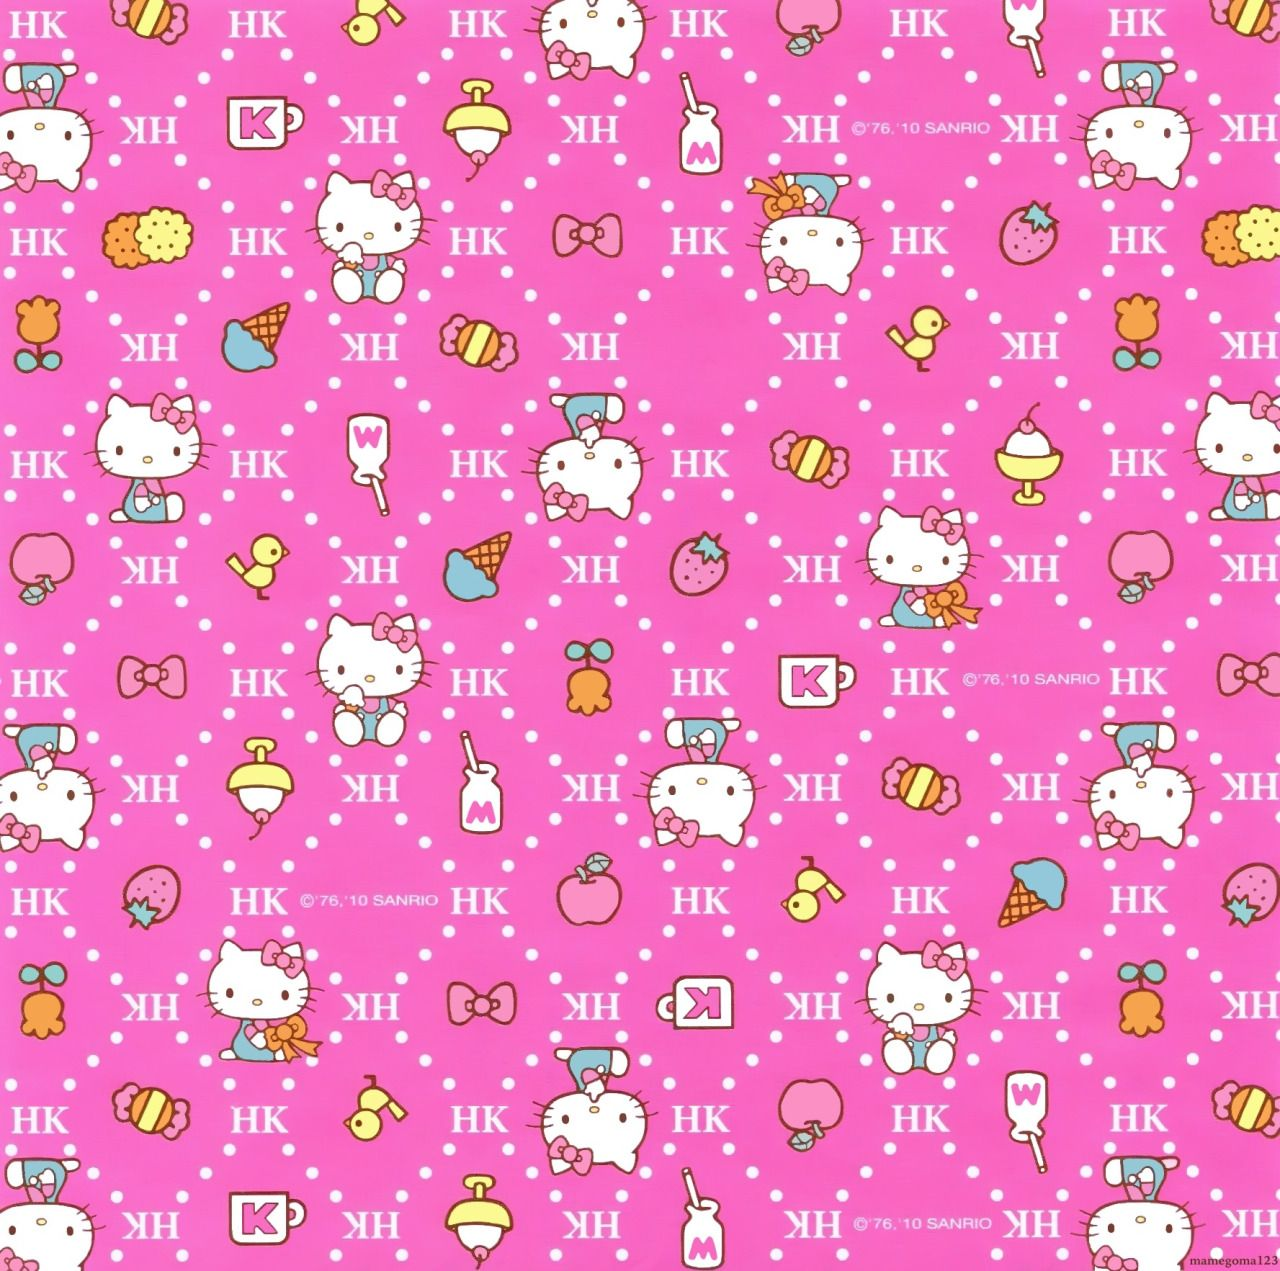 Top Wallpaper Hello Kitty Painting - fd56eda51562367366850e6fa383be29  Pic_71648.jpg